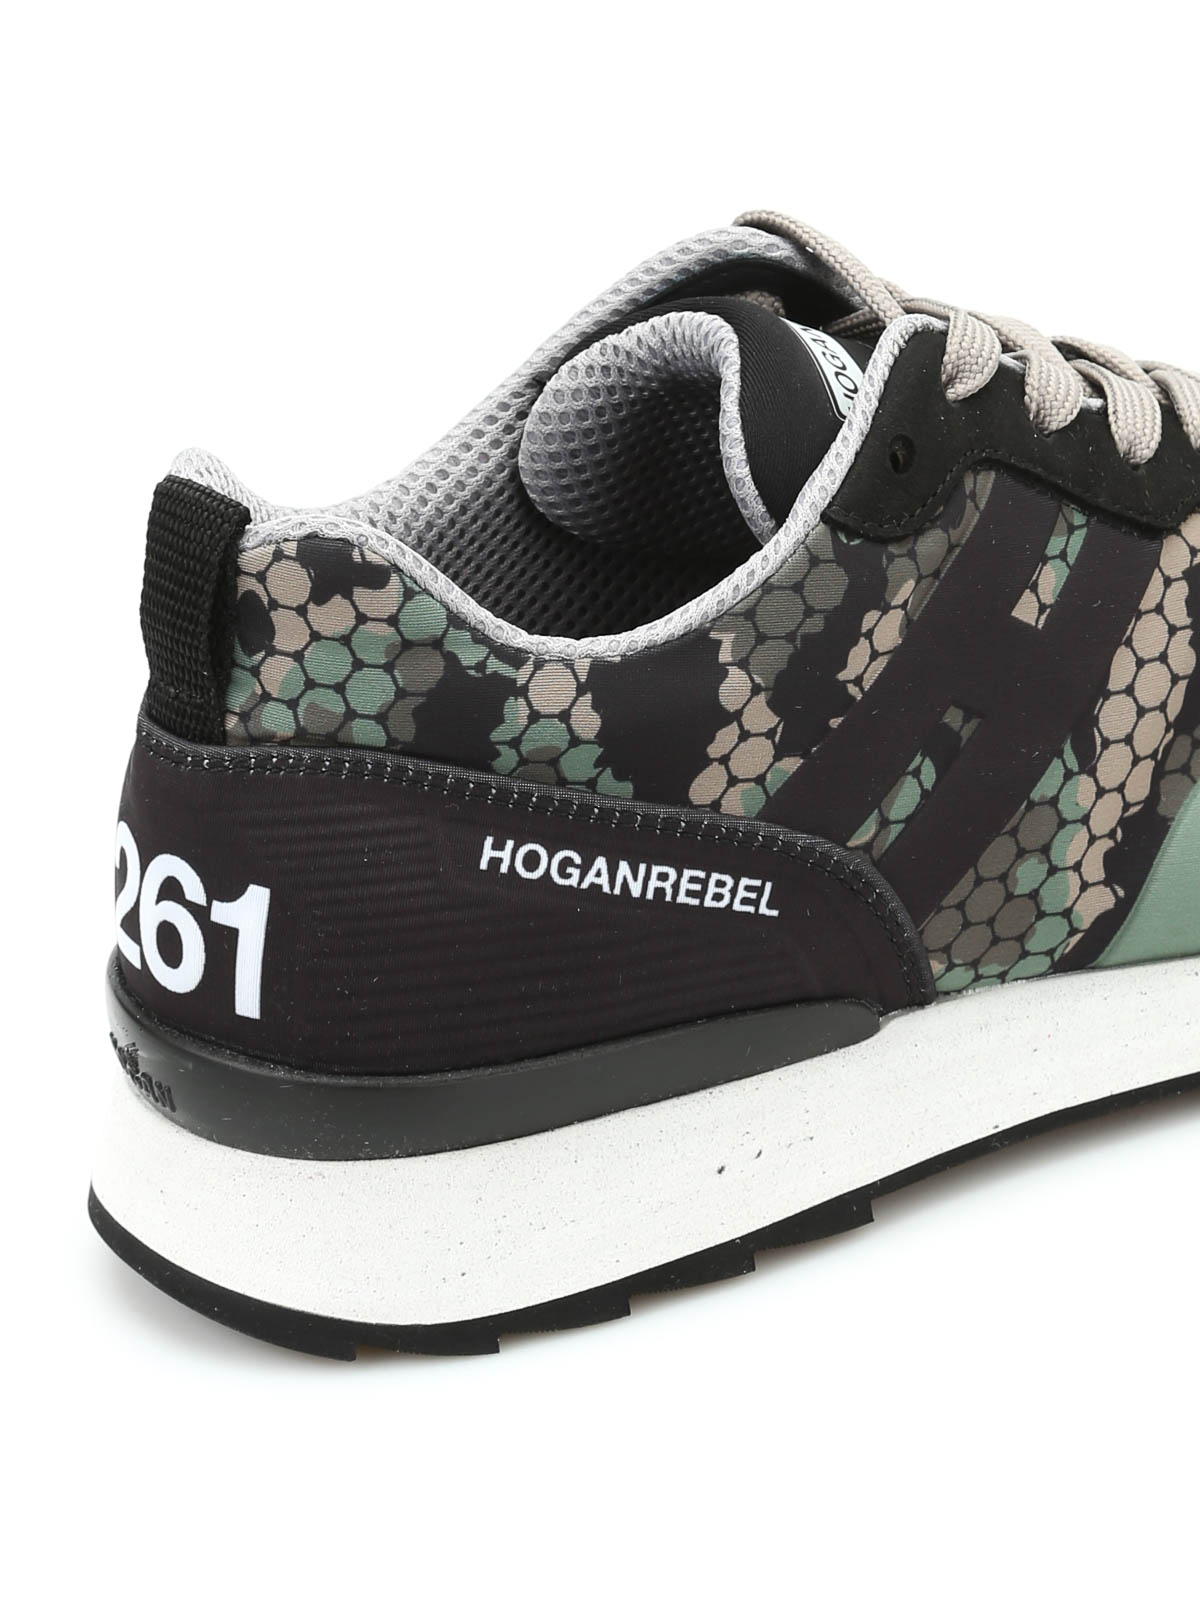 Hogan Rebel Hogan Rebel Running R261 Sneakers Trainers